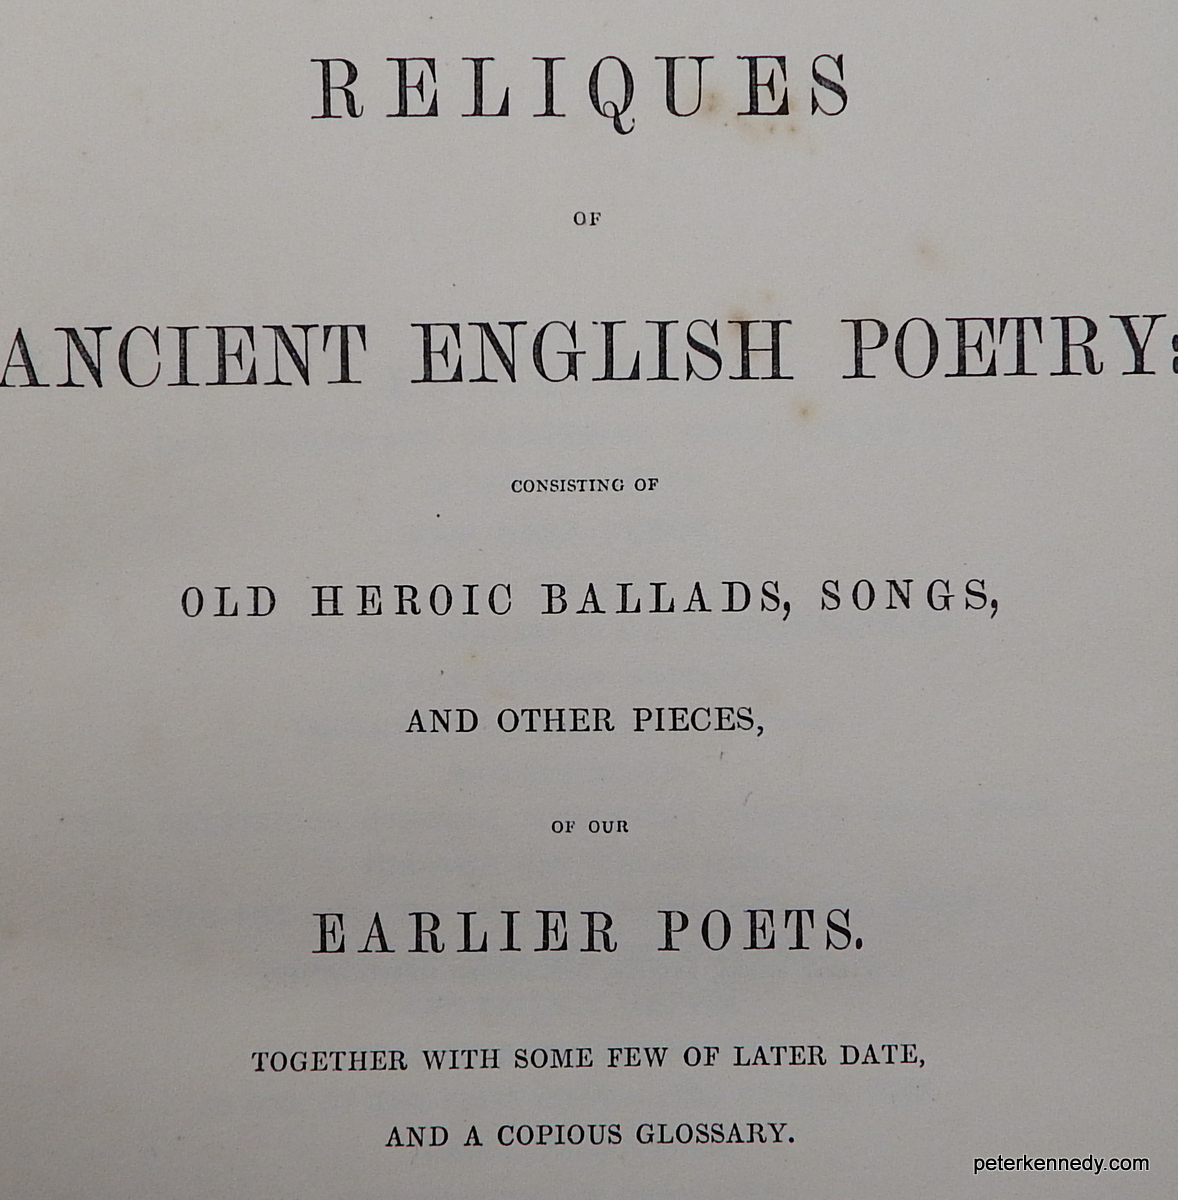 Image for Reliques of Ancient English Poetry consisting of old heroic ballads, songs and other pieces of the earlier poets